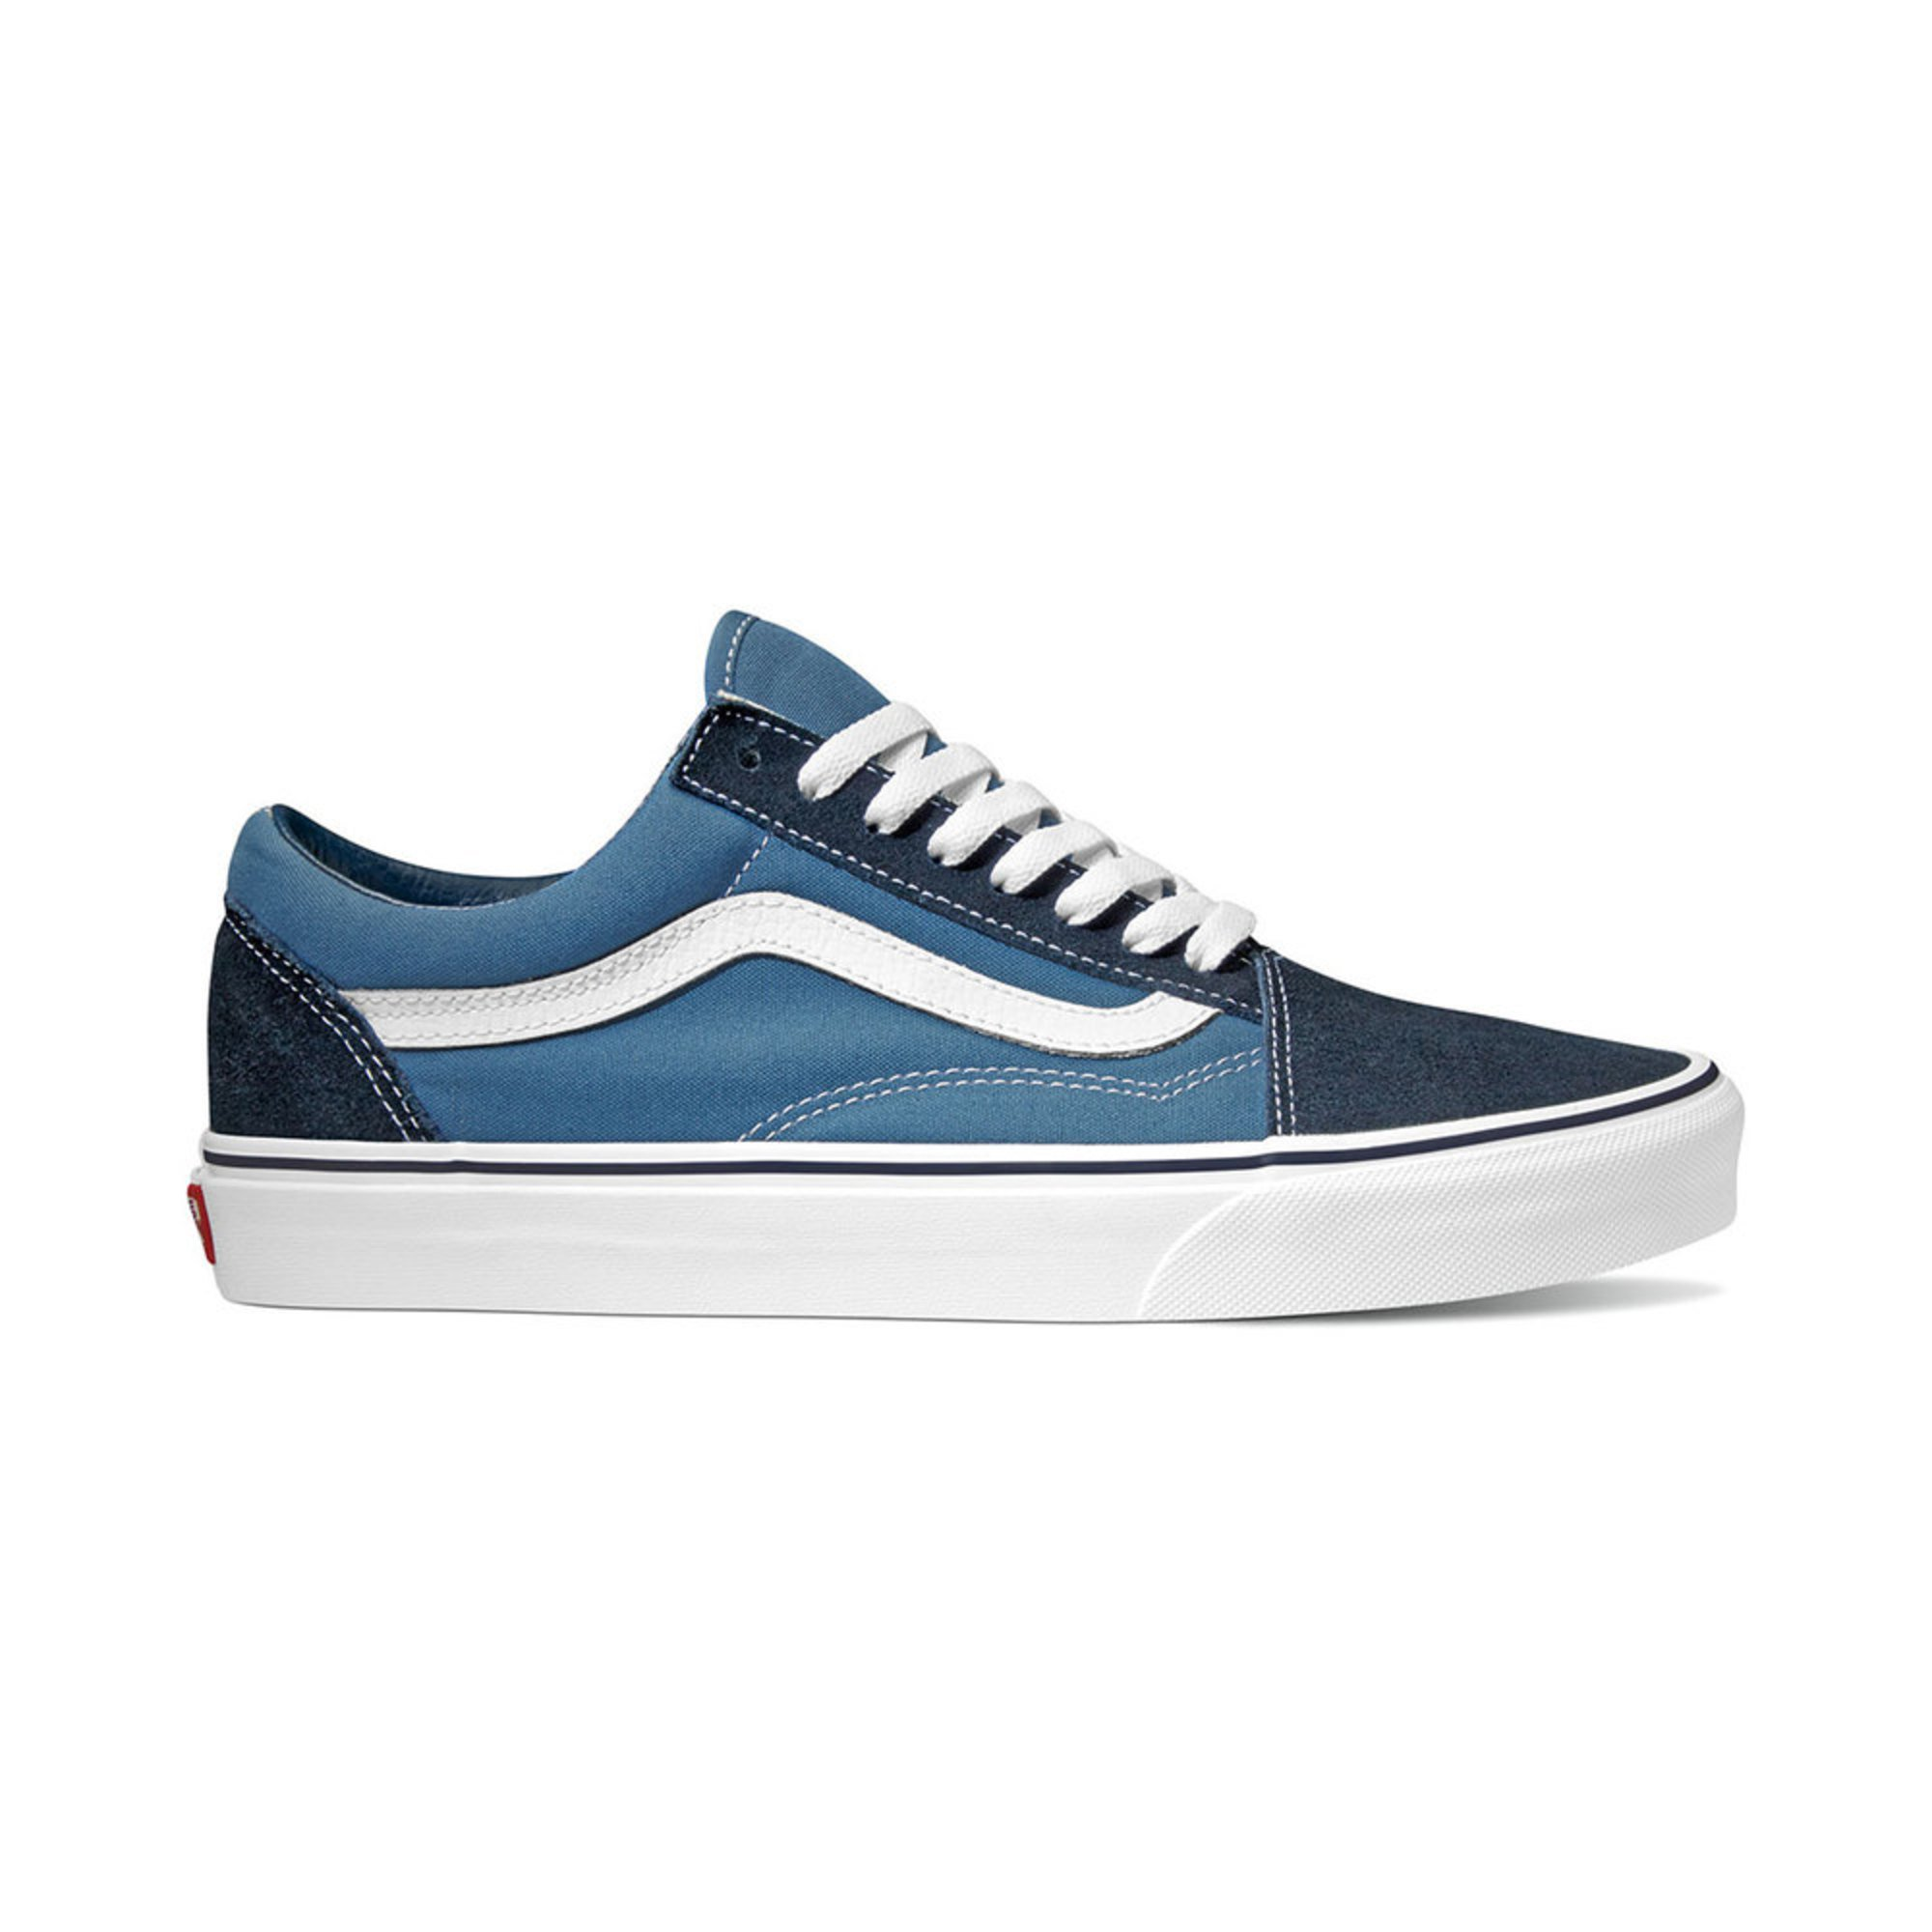 cd579e7943 Vans. Vans Men s Old Skool Skate Shoe